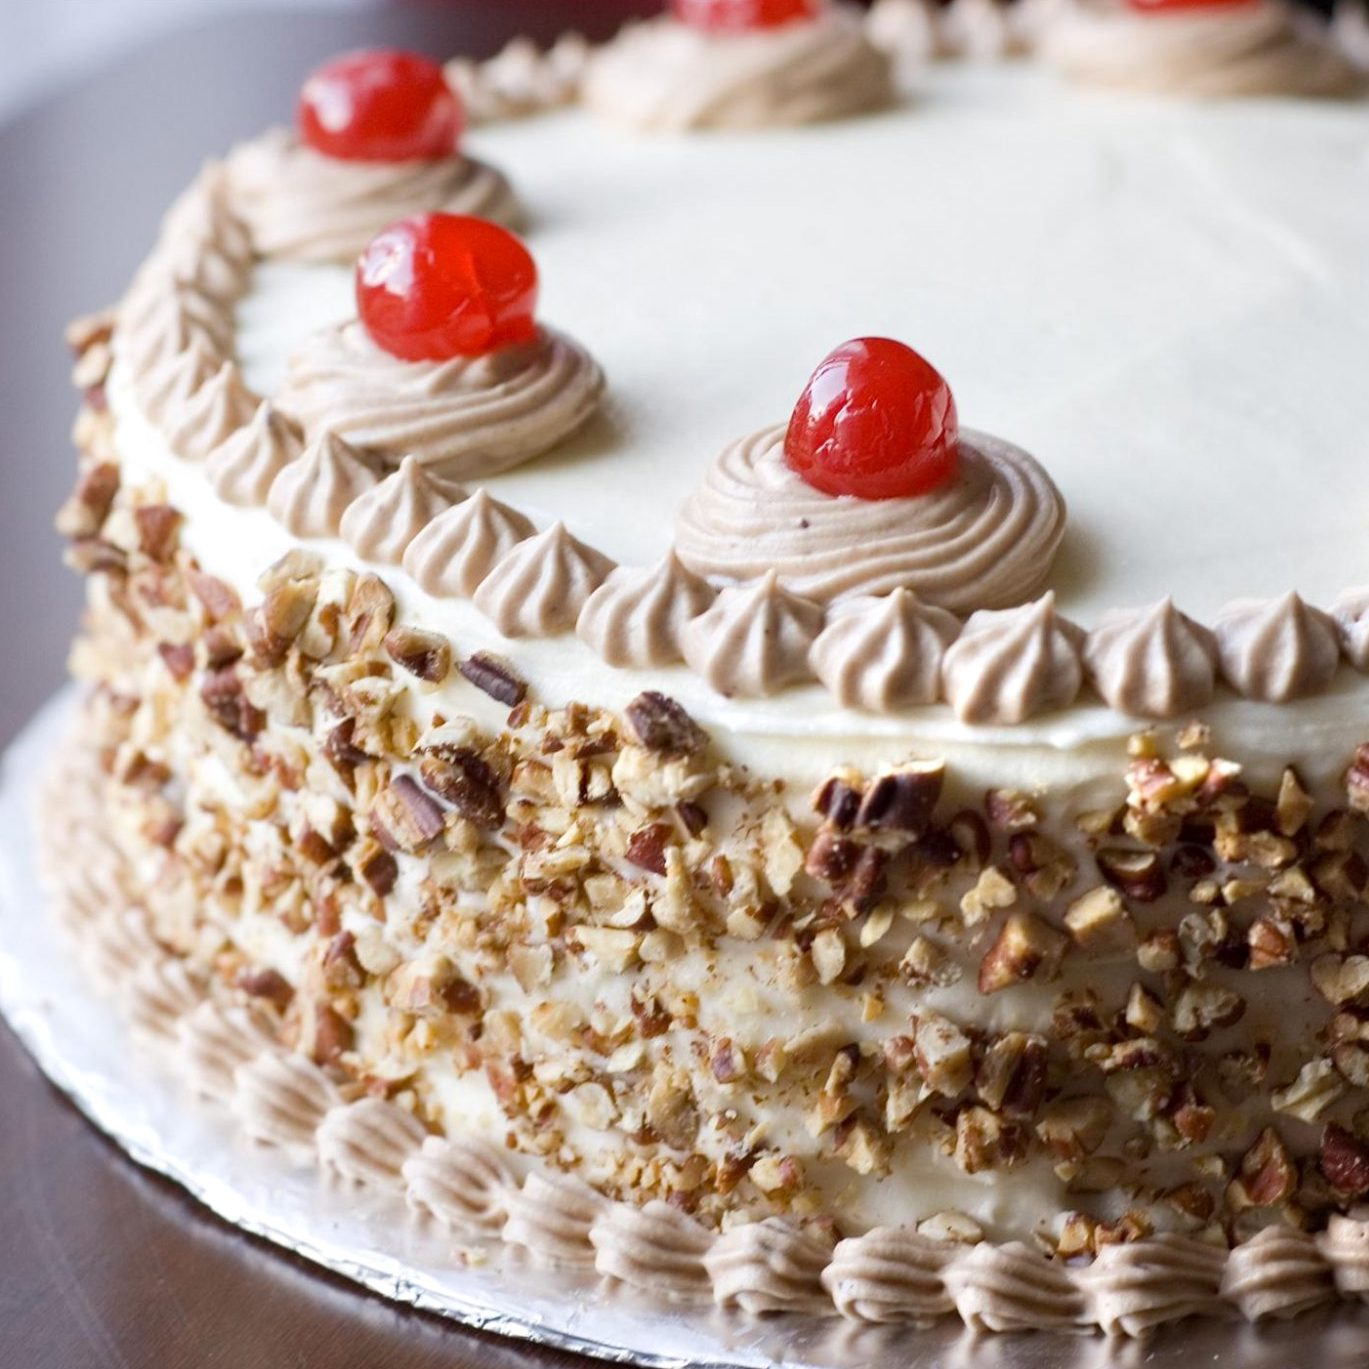 Italian Cream Cake decorated with chopped nuts and cherries